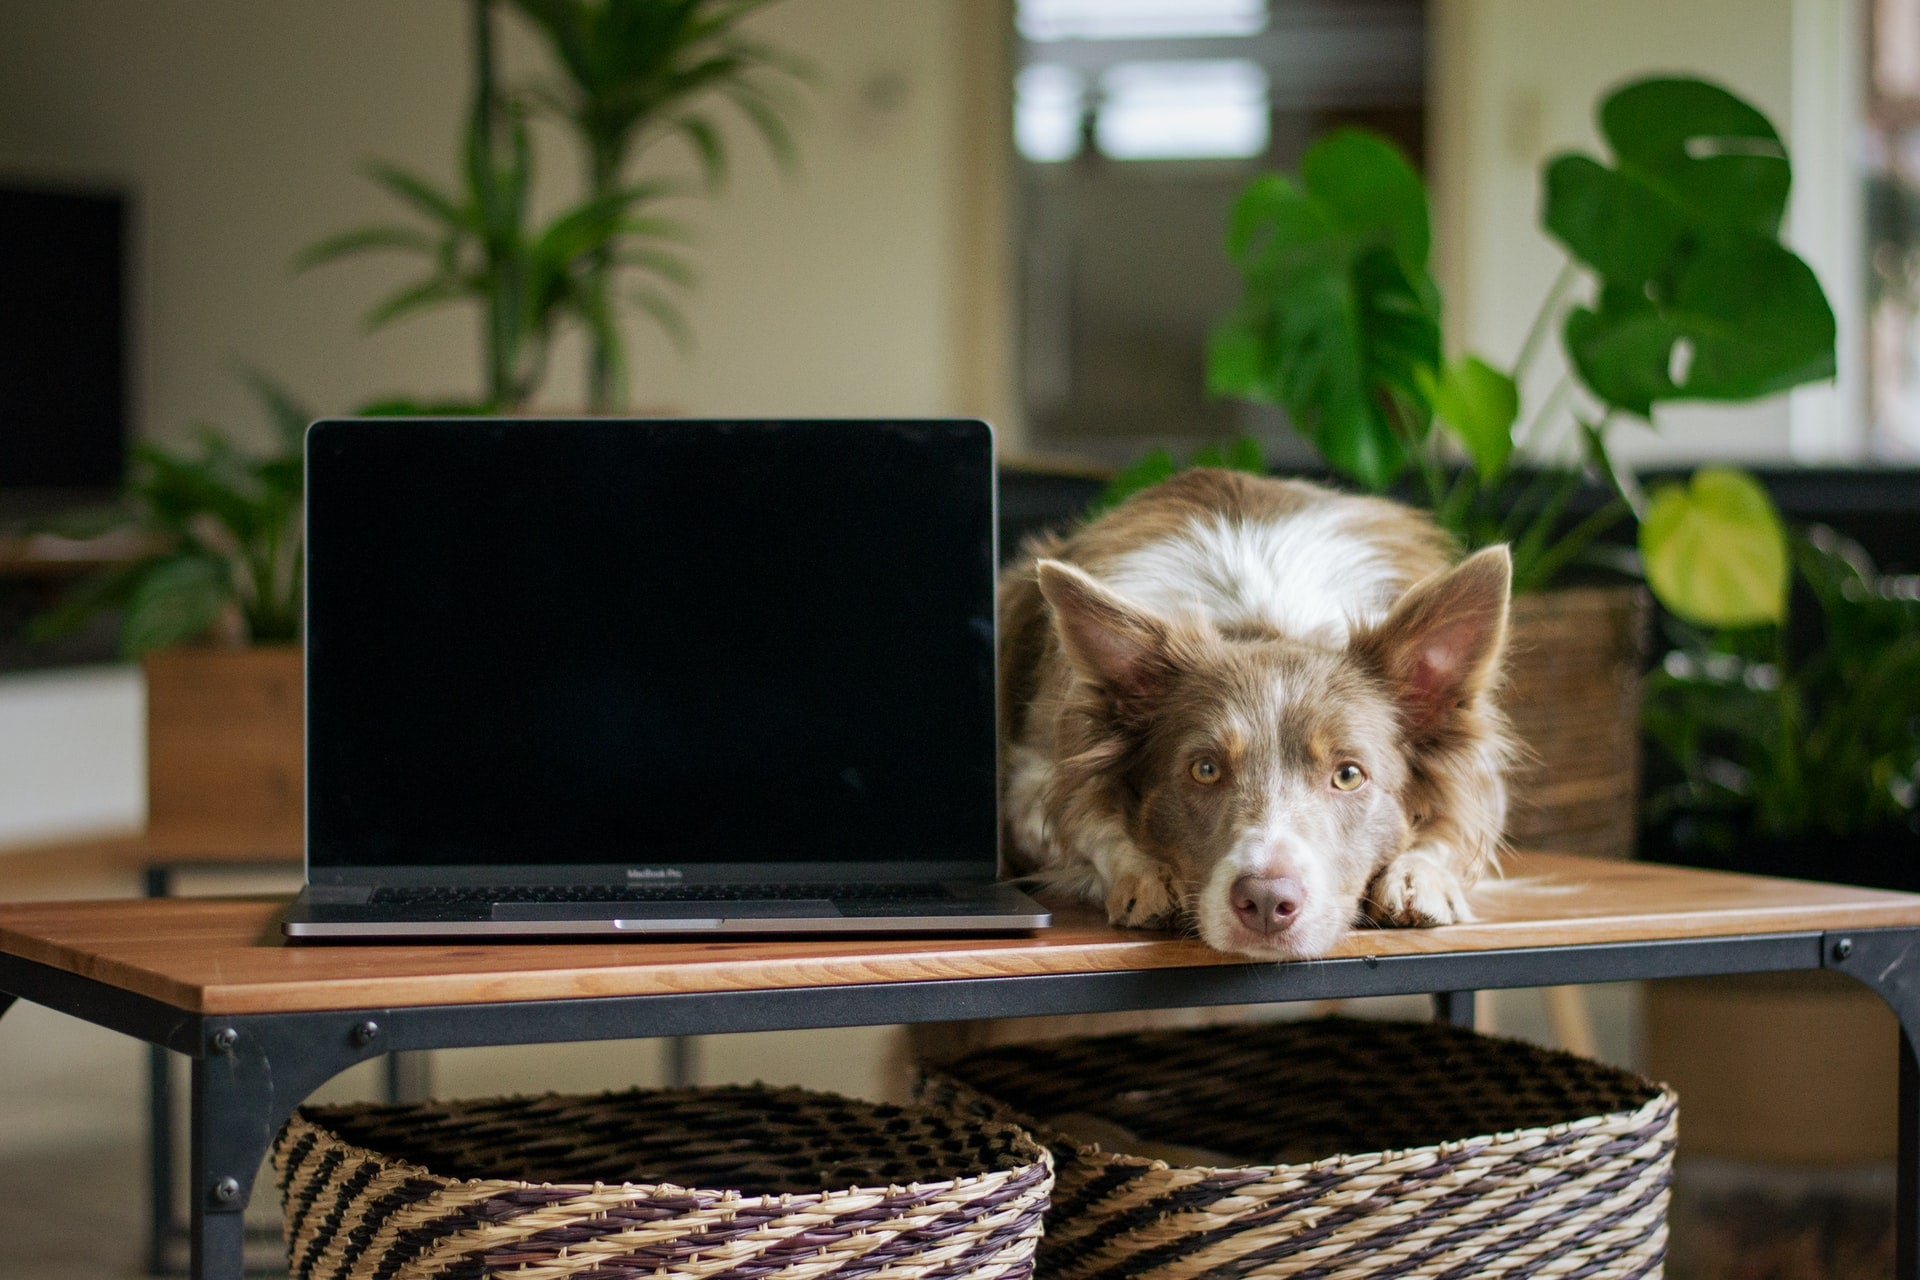 What It's Like to Work From Home With Your Dog